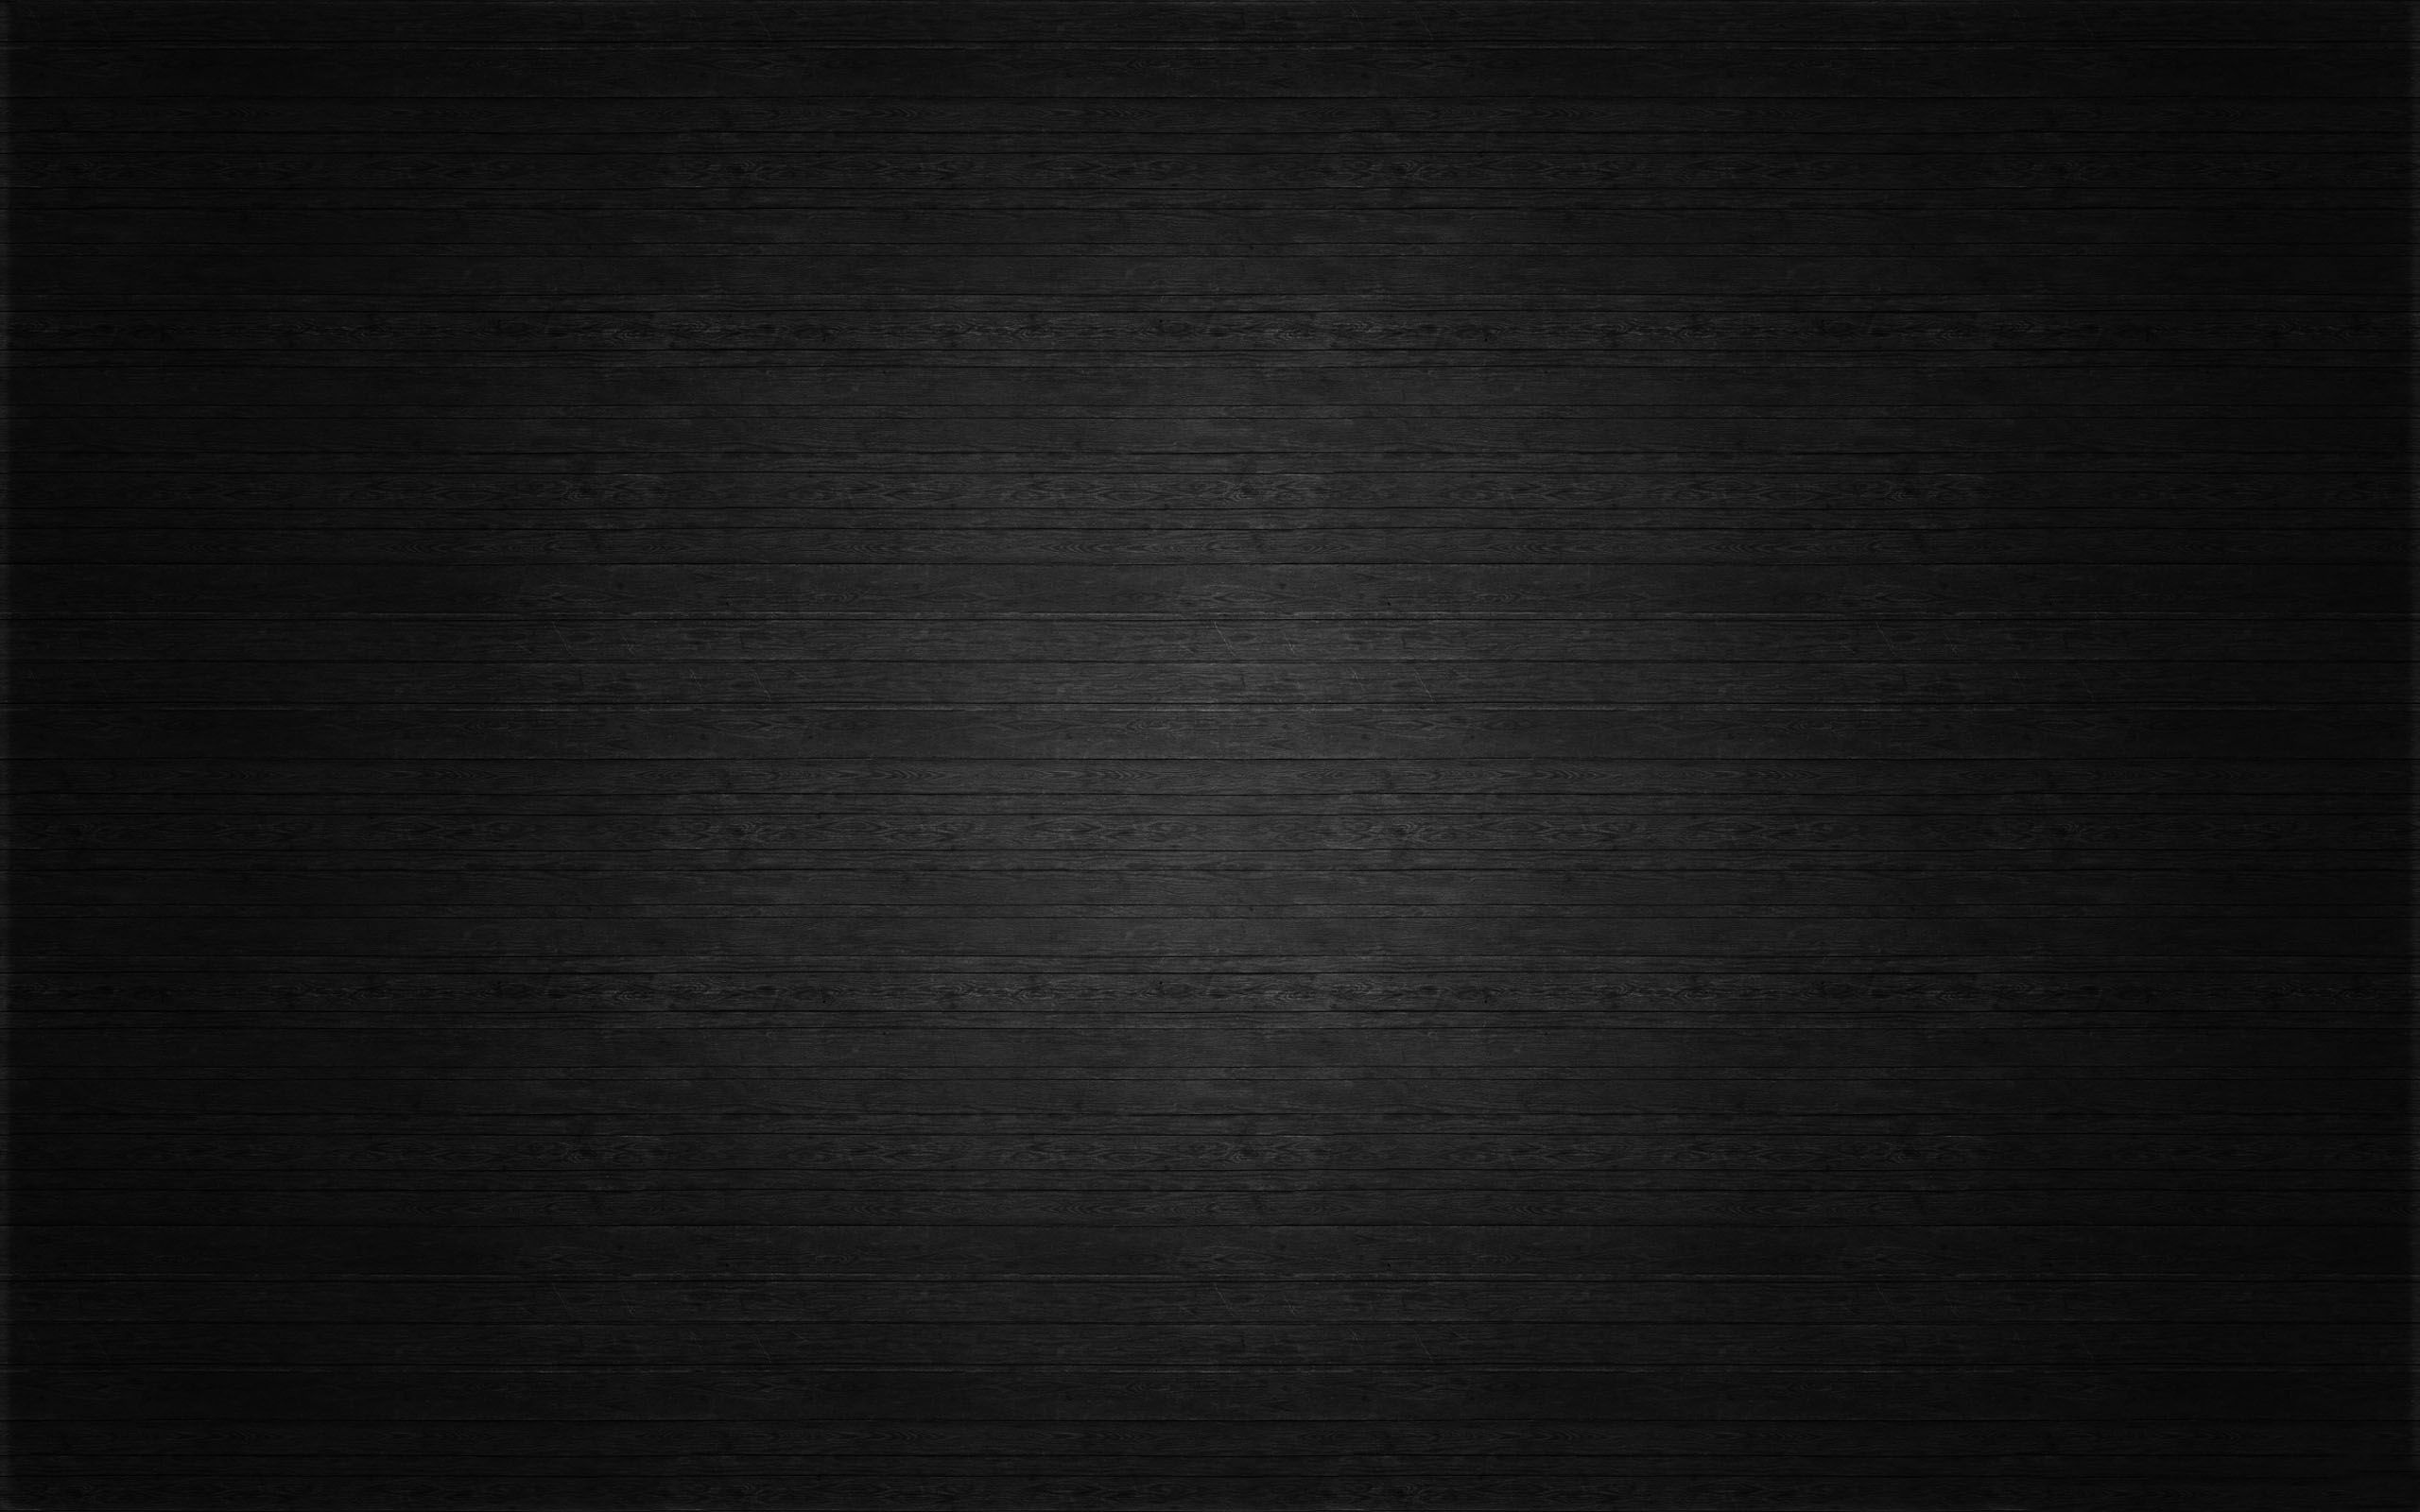 575 Wallpapers (All 1080p, No watermarks) Black